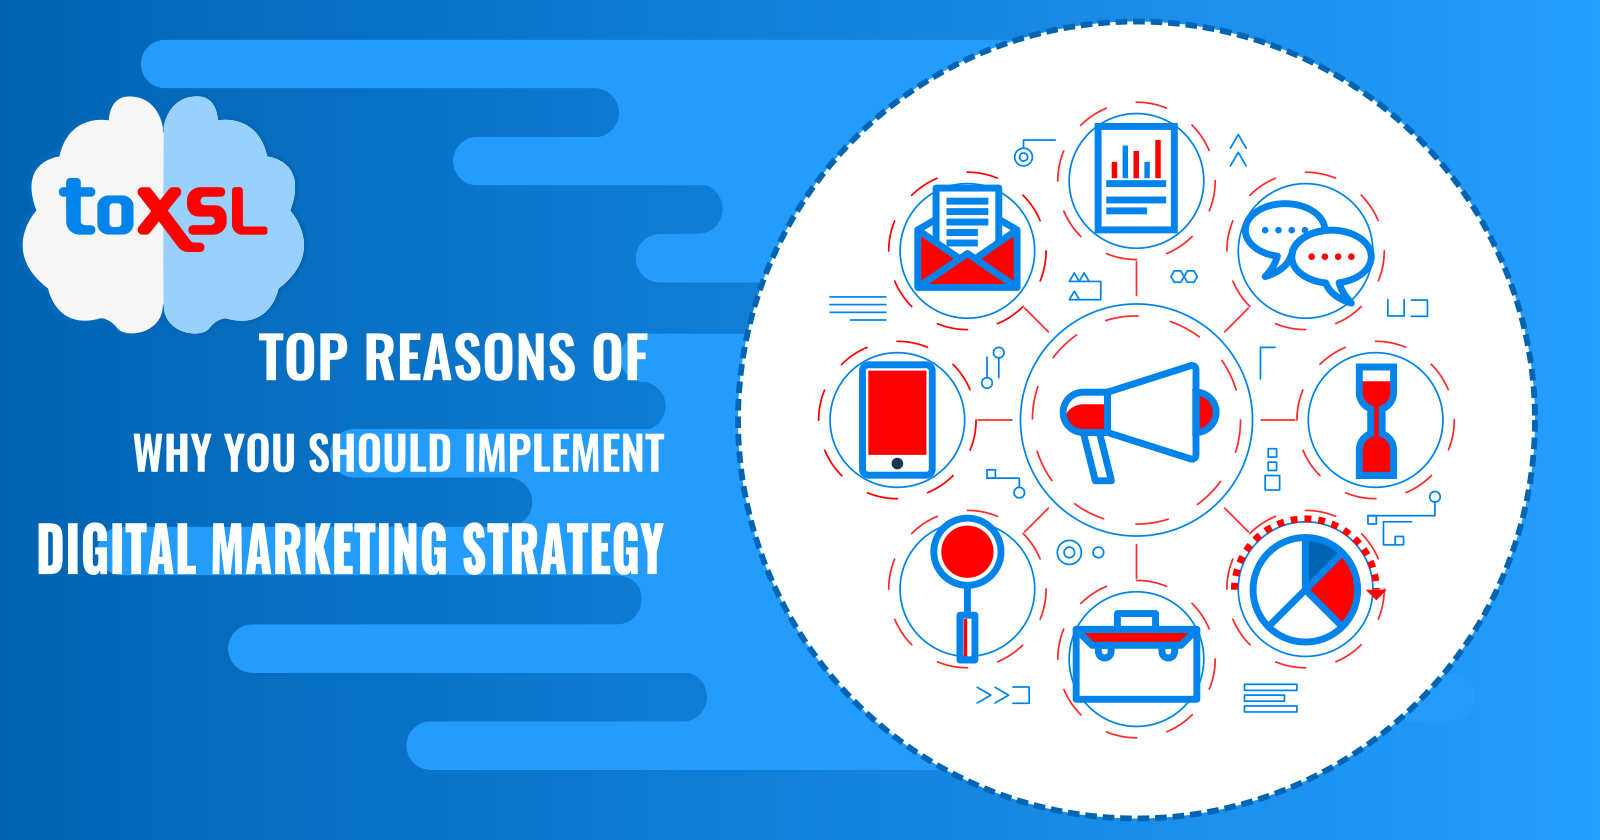 Top Reasons of Why You Should Implement Digital Marketing Strategy